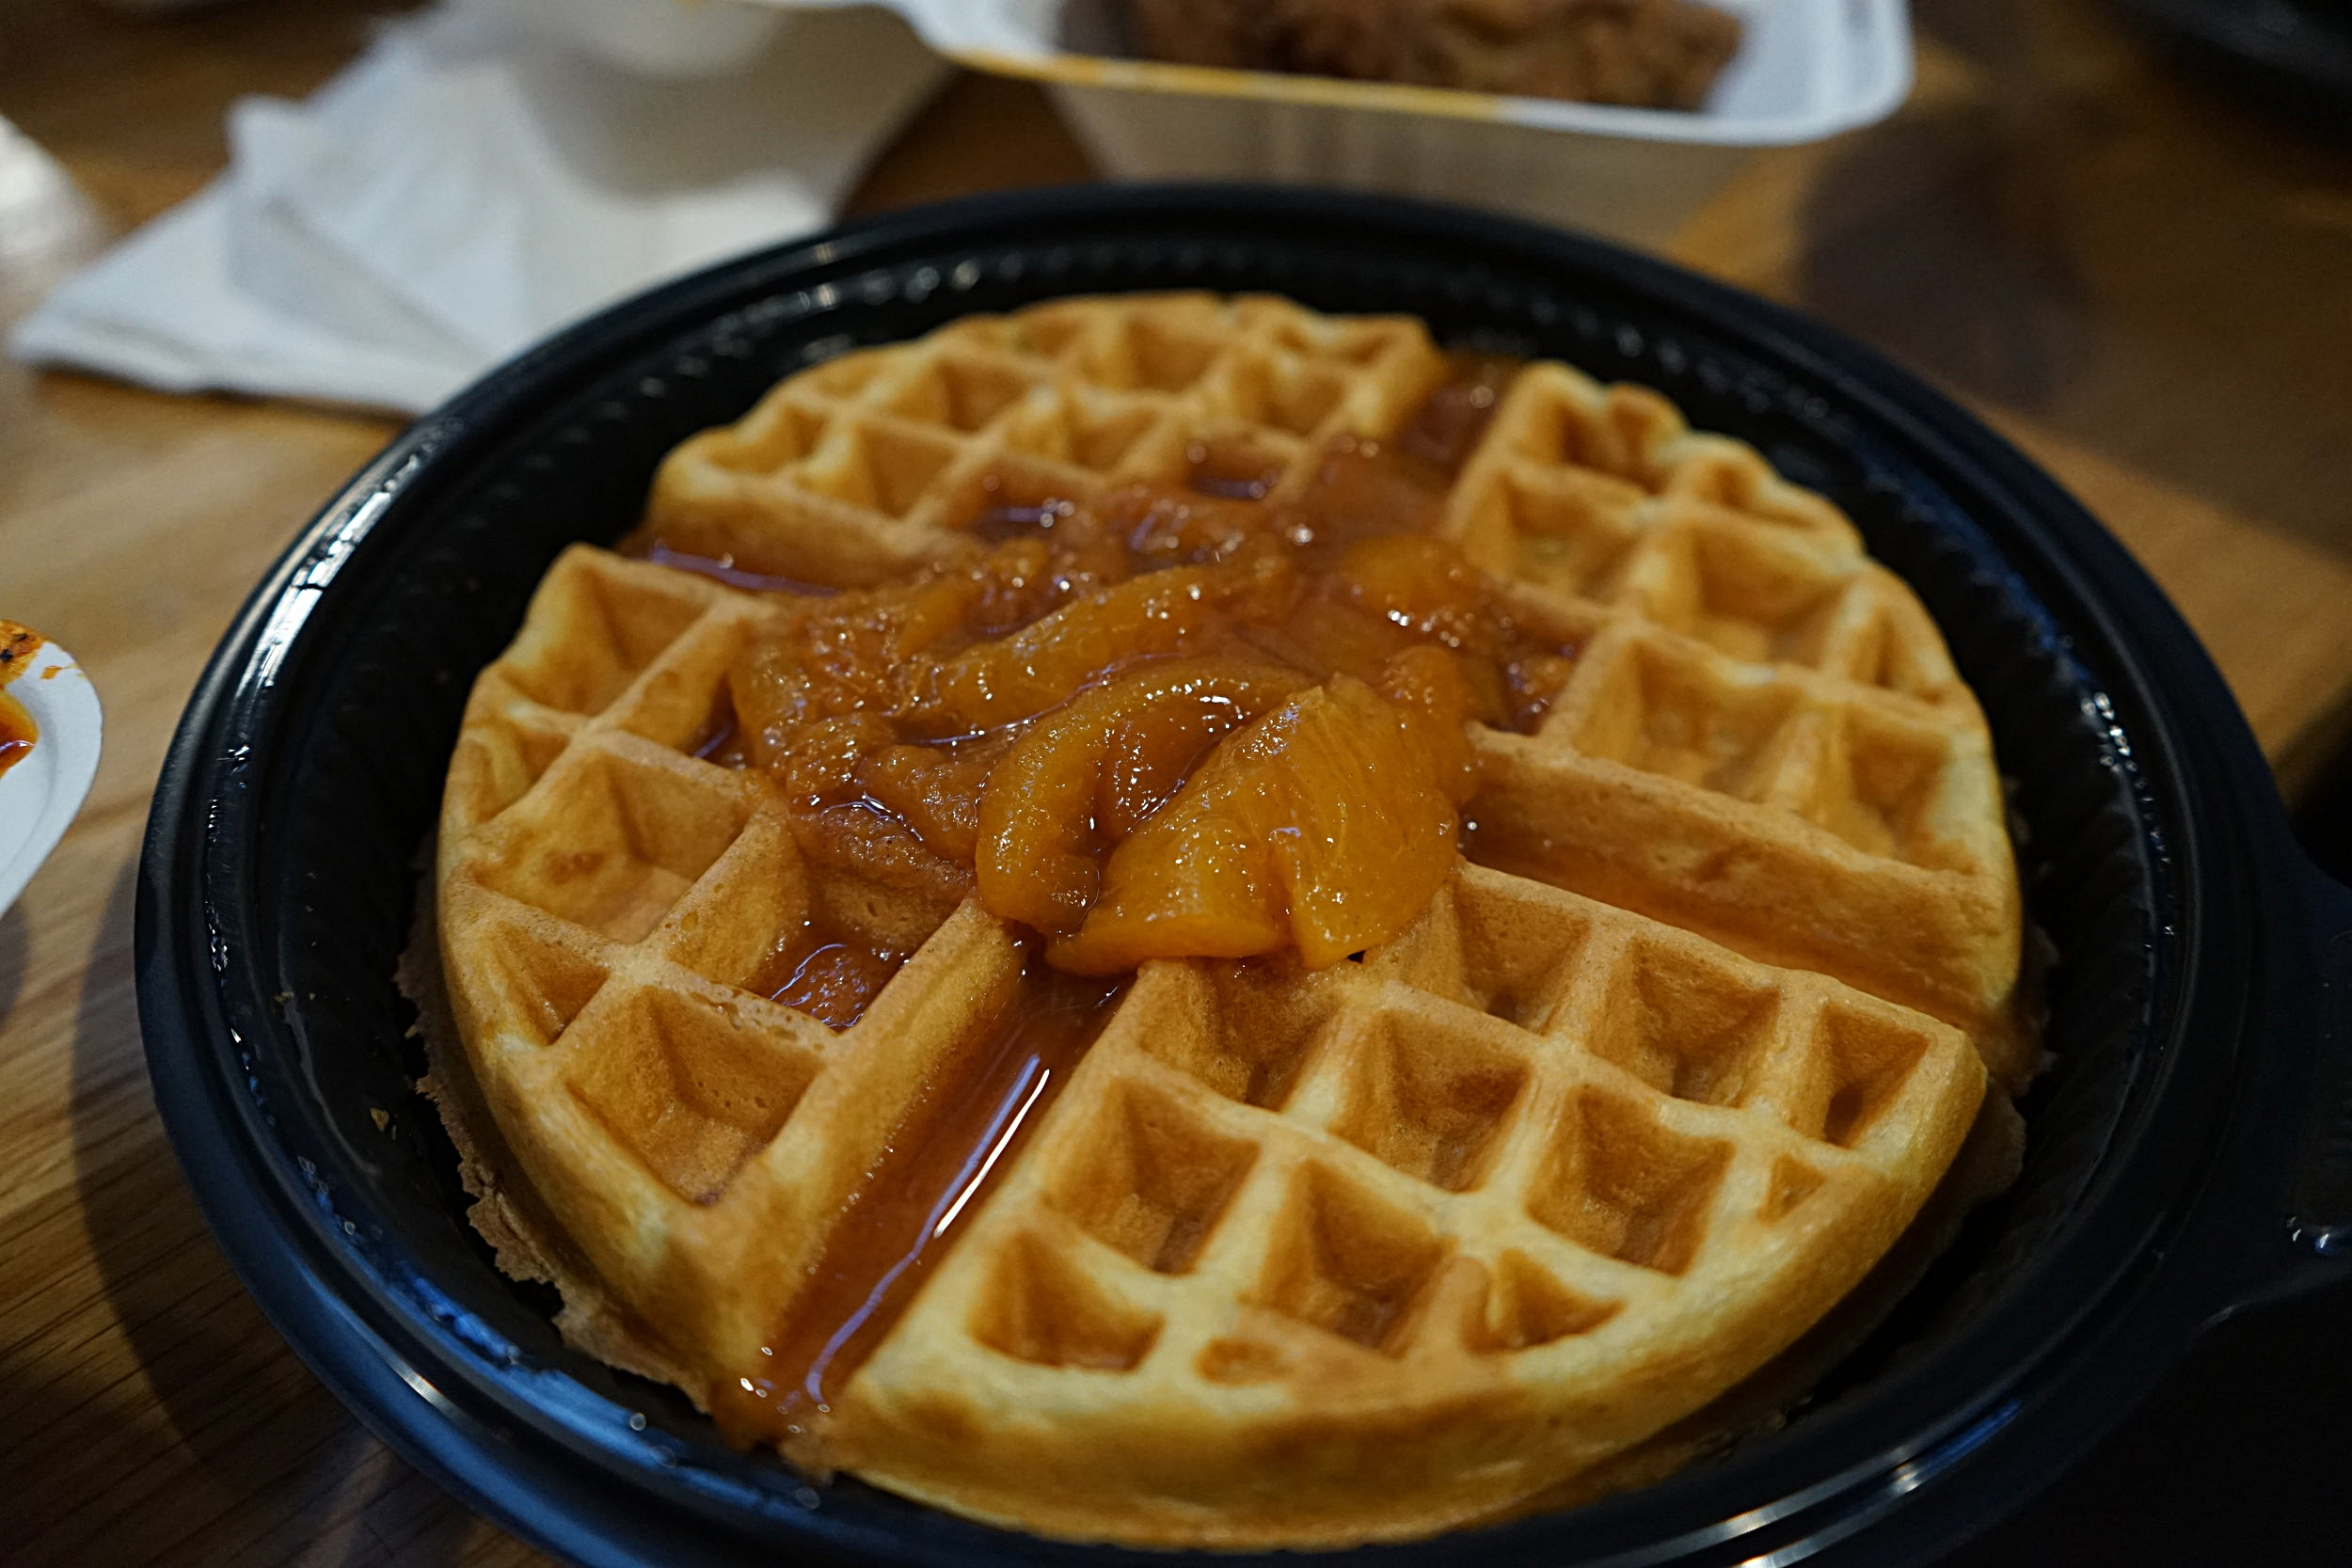 Peach Waffle: Waffle flavors are seasonal. The only downside to this waffle is that it wasn't peach flavored.